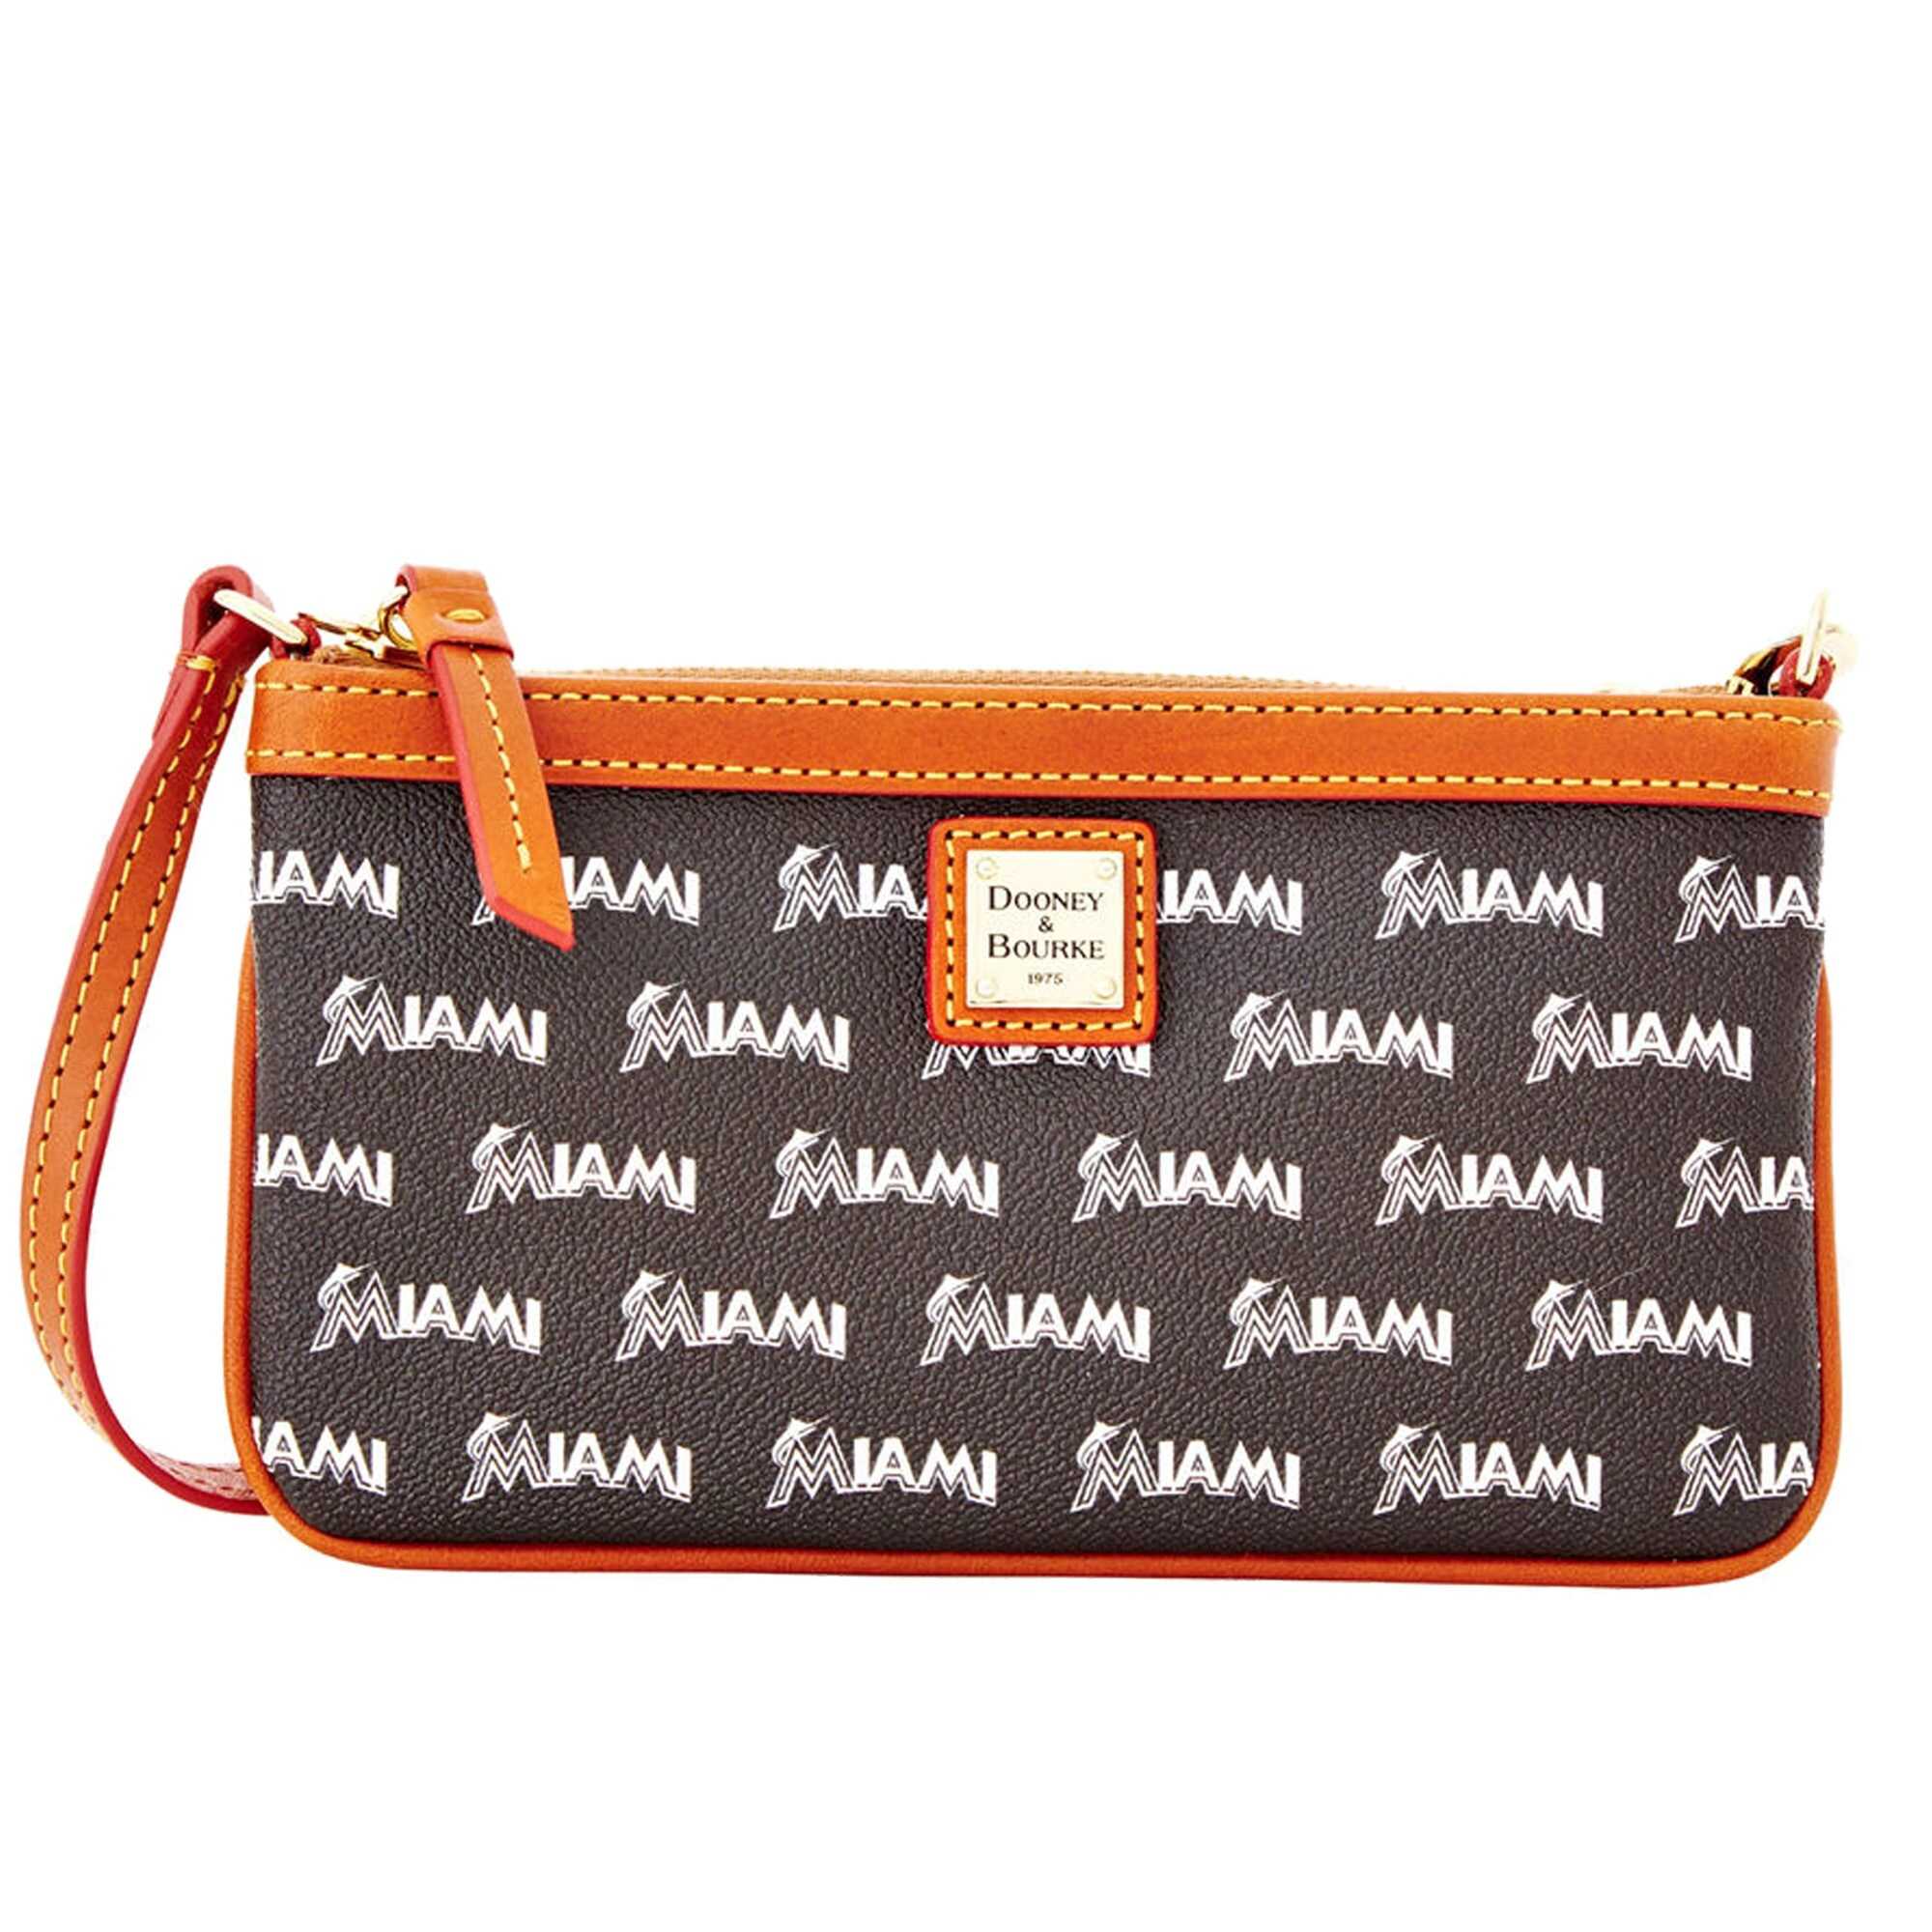 Miami Marlins Dooney & Bourke Women's Team Color Large Slim Wristlet